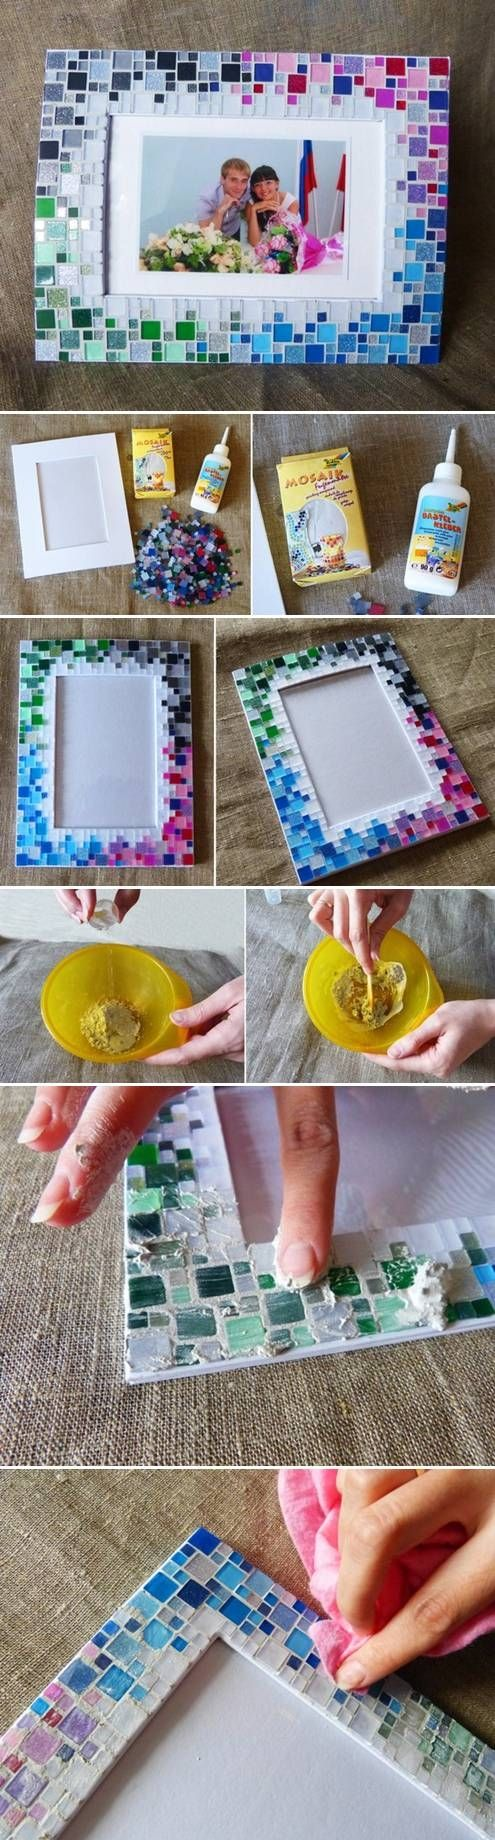 521 best mosaic mirrors images on pinterest mosaic mirrors mirror diy colorful mosaic picture frame cute colorful colors diy frame crafts easy crafts diy ideas diy solutioingenieria Choice Image